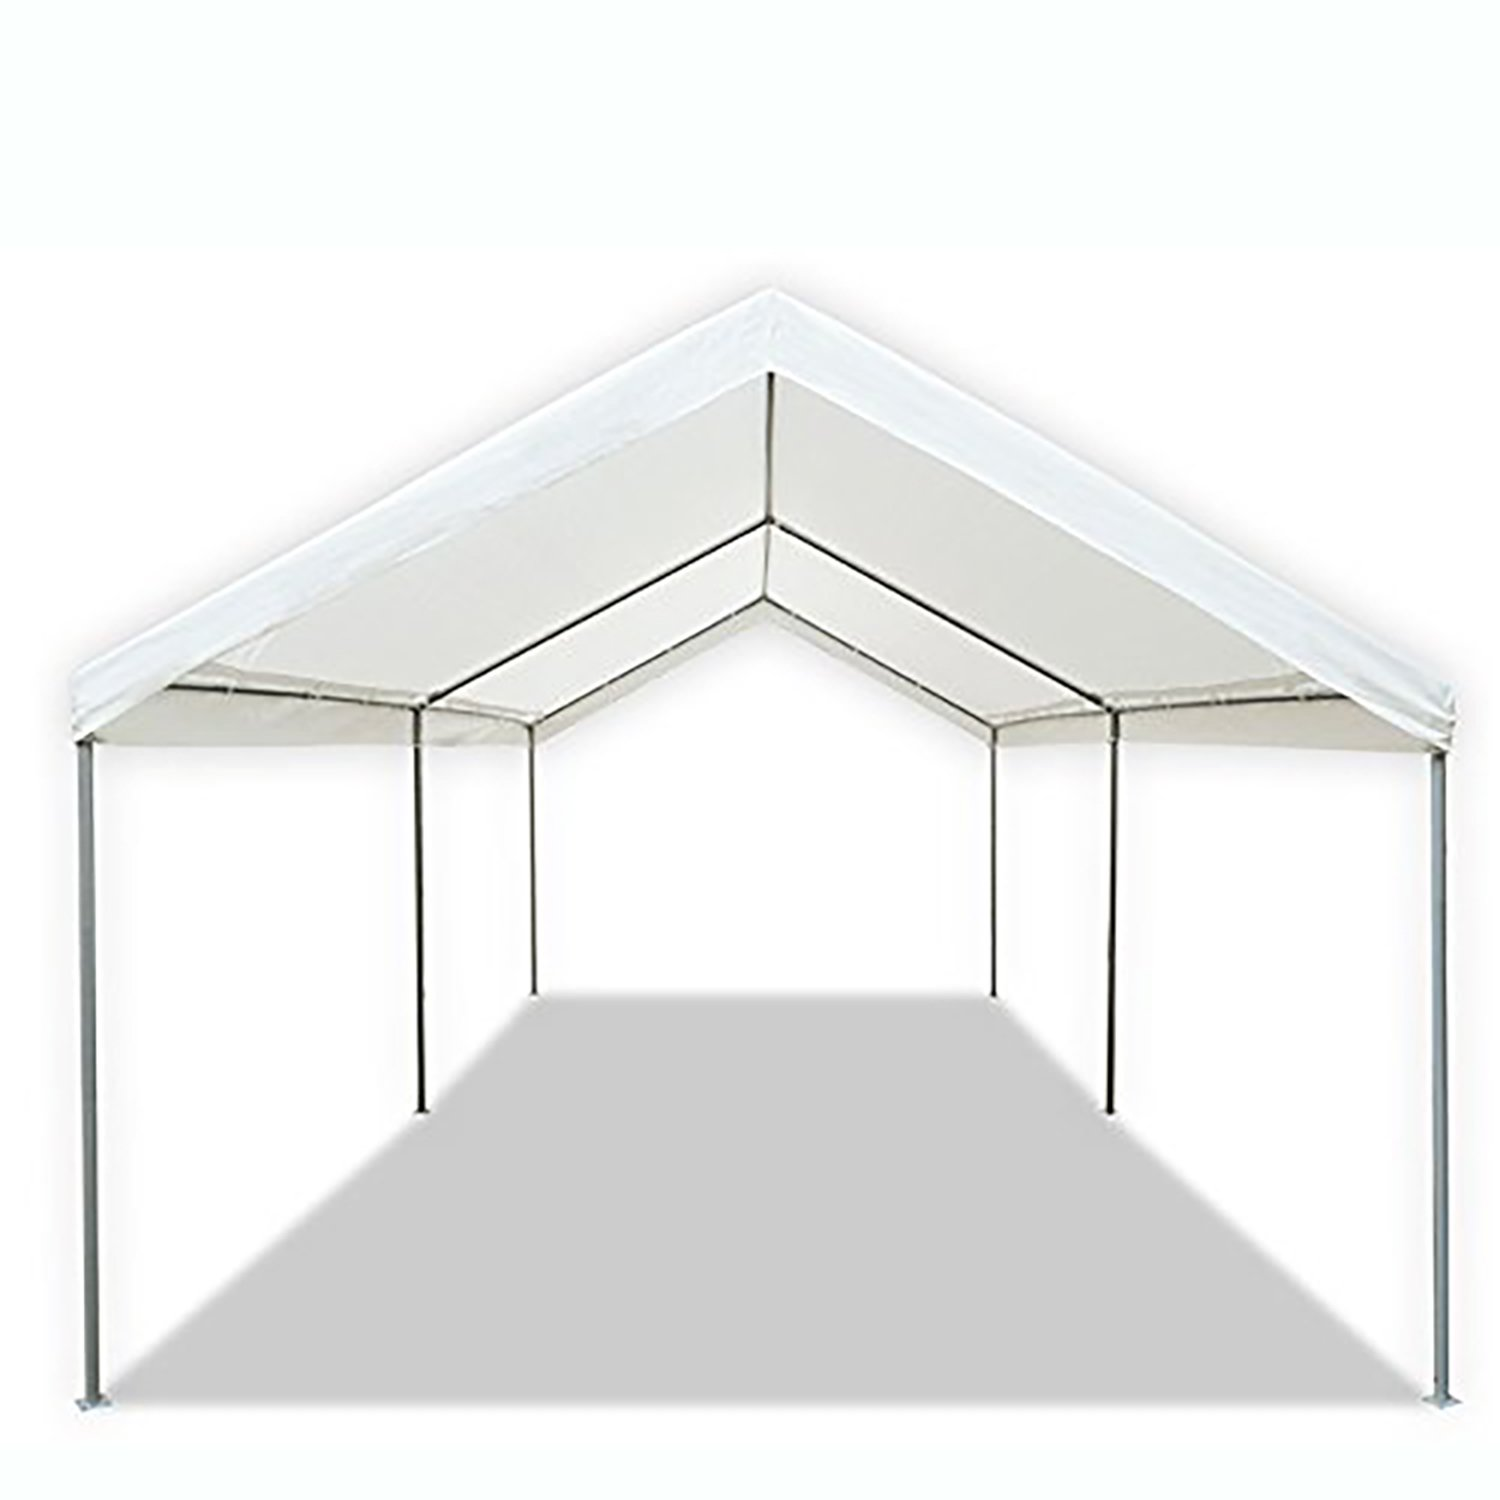 Caravan Canopy Sports 10u0027 X 20u0027 Domain Carport Garage (200 sq ft Coverage  sc 1 st  Walmart & Caravan Canopy Sports 10u0027 X 20u0027 Domain Carport Garage (200 sq ft ...